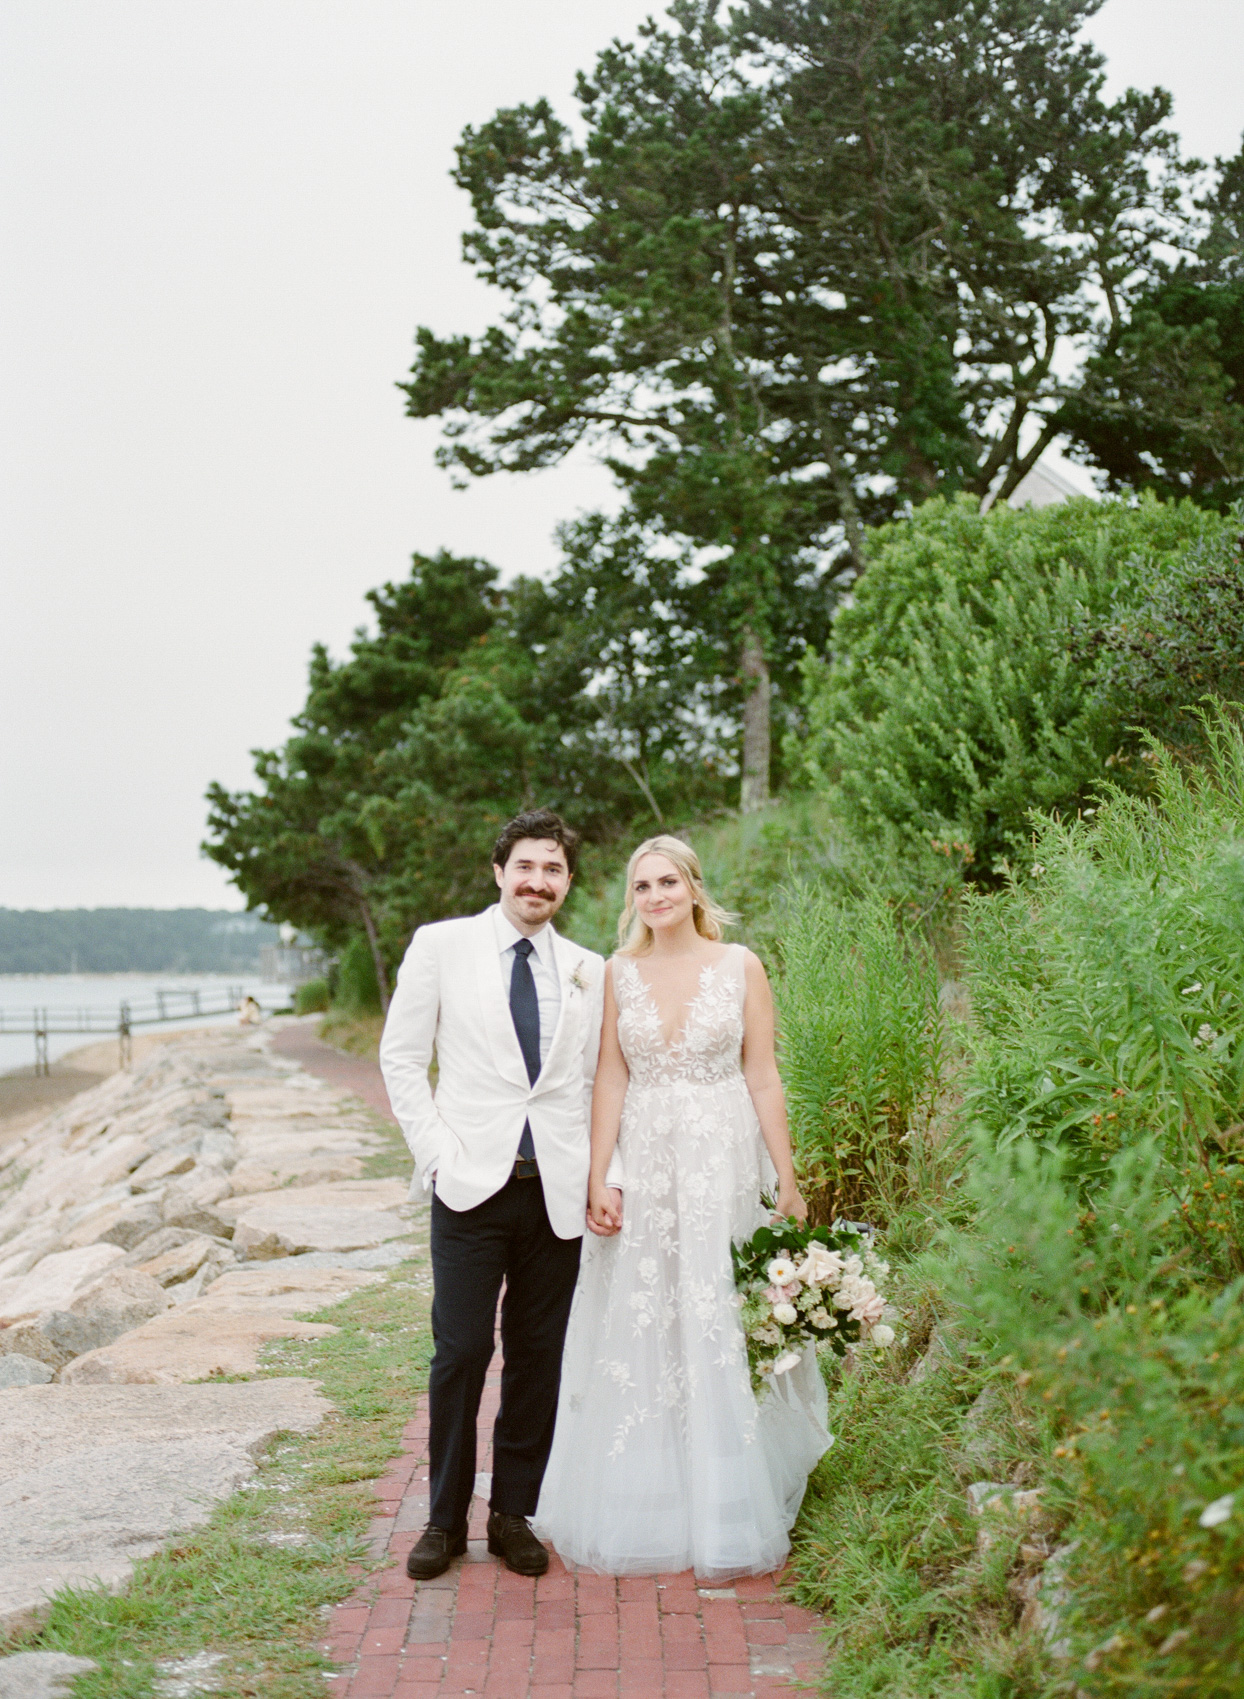 wedding couple portrait on walkway by water